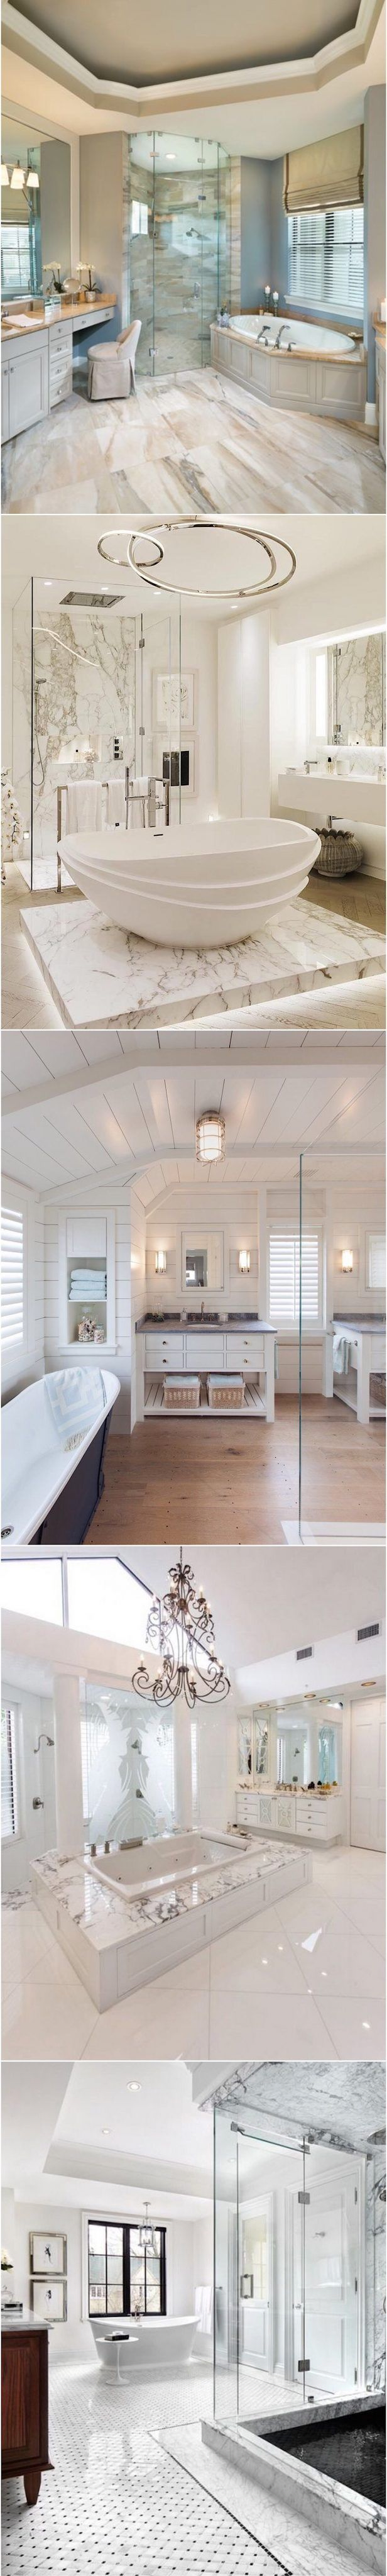 Trending Bathroom Designs | Bathroom designs, Bath and Master bathrooms